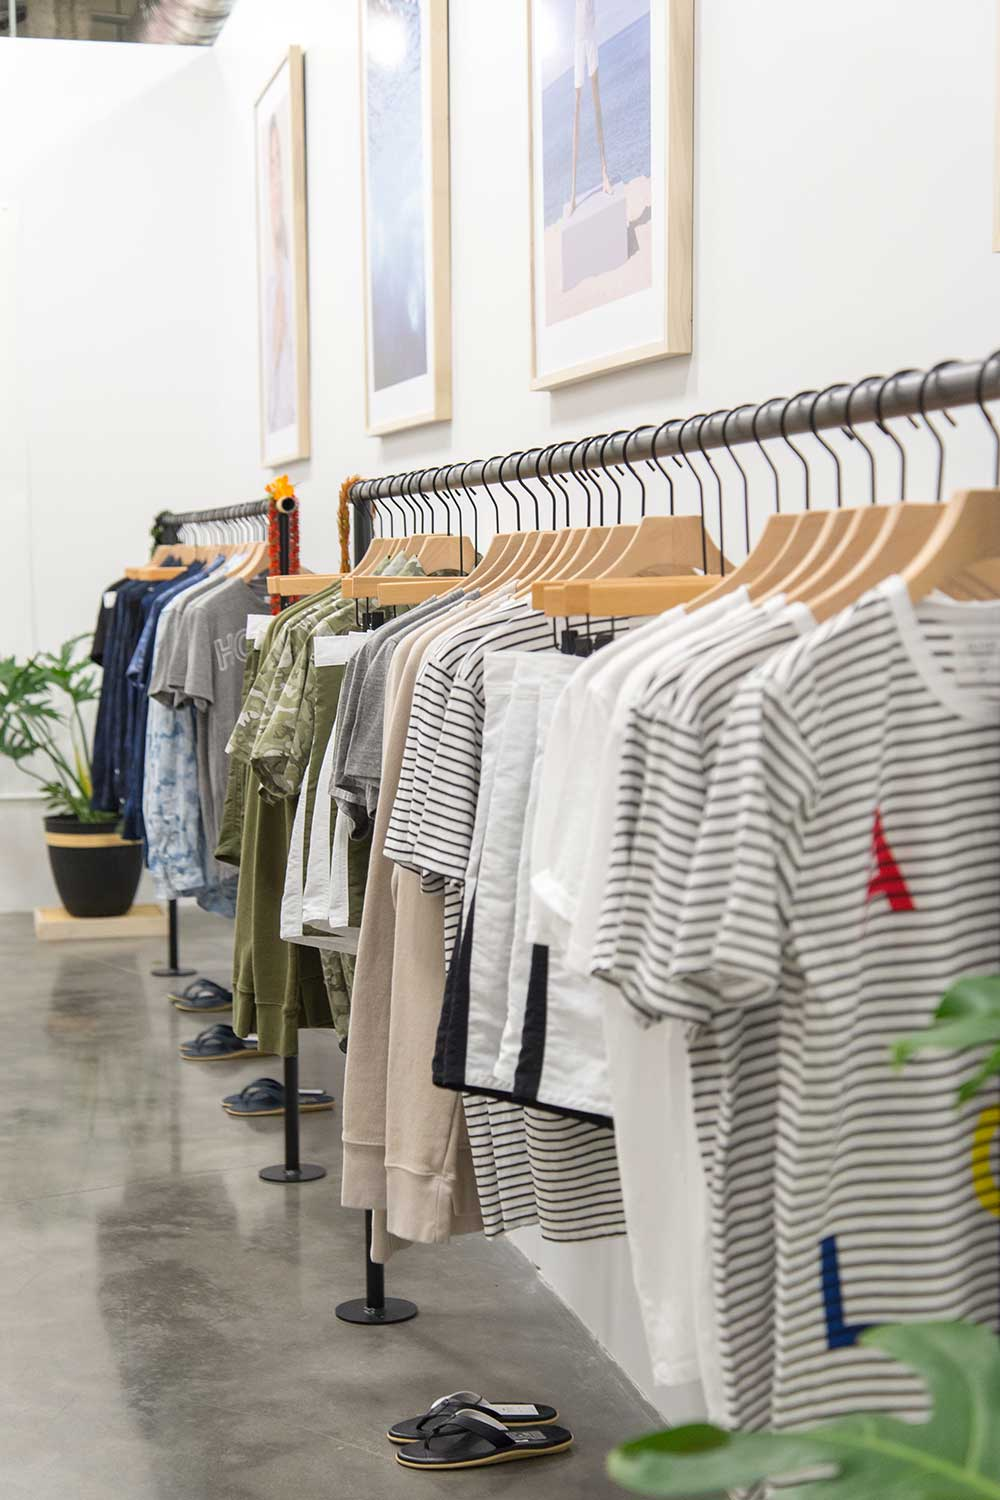 Rows of shirts hanging on racks